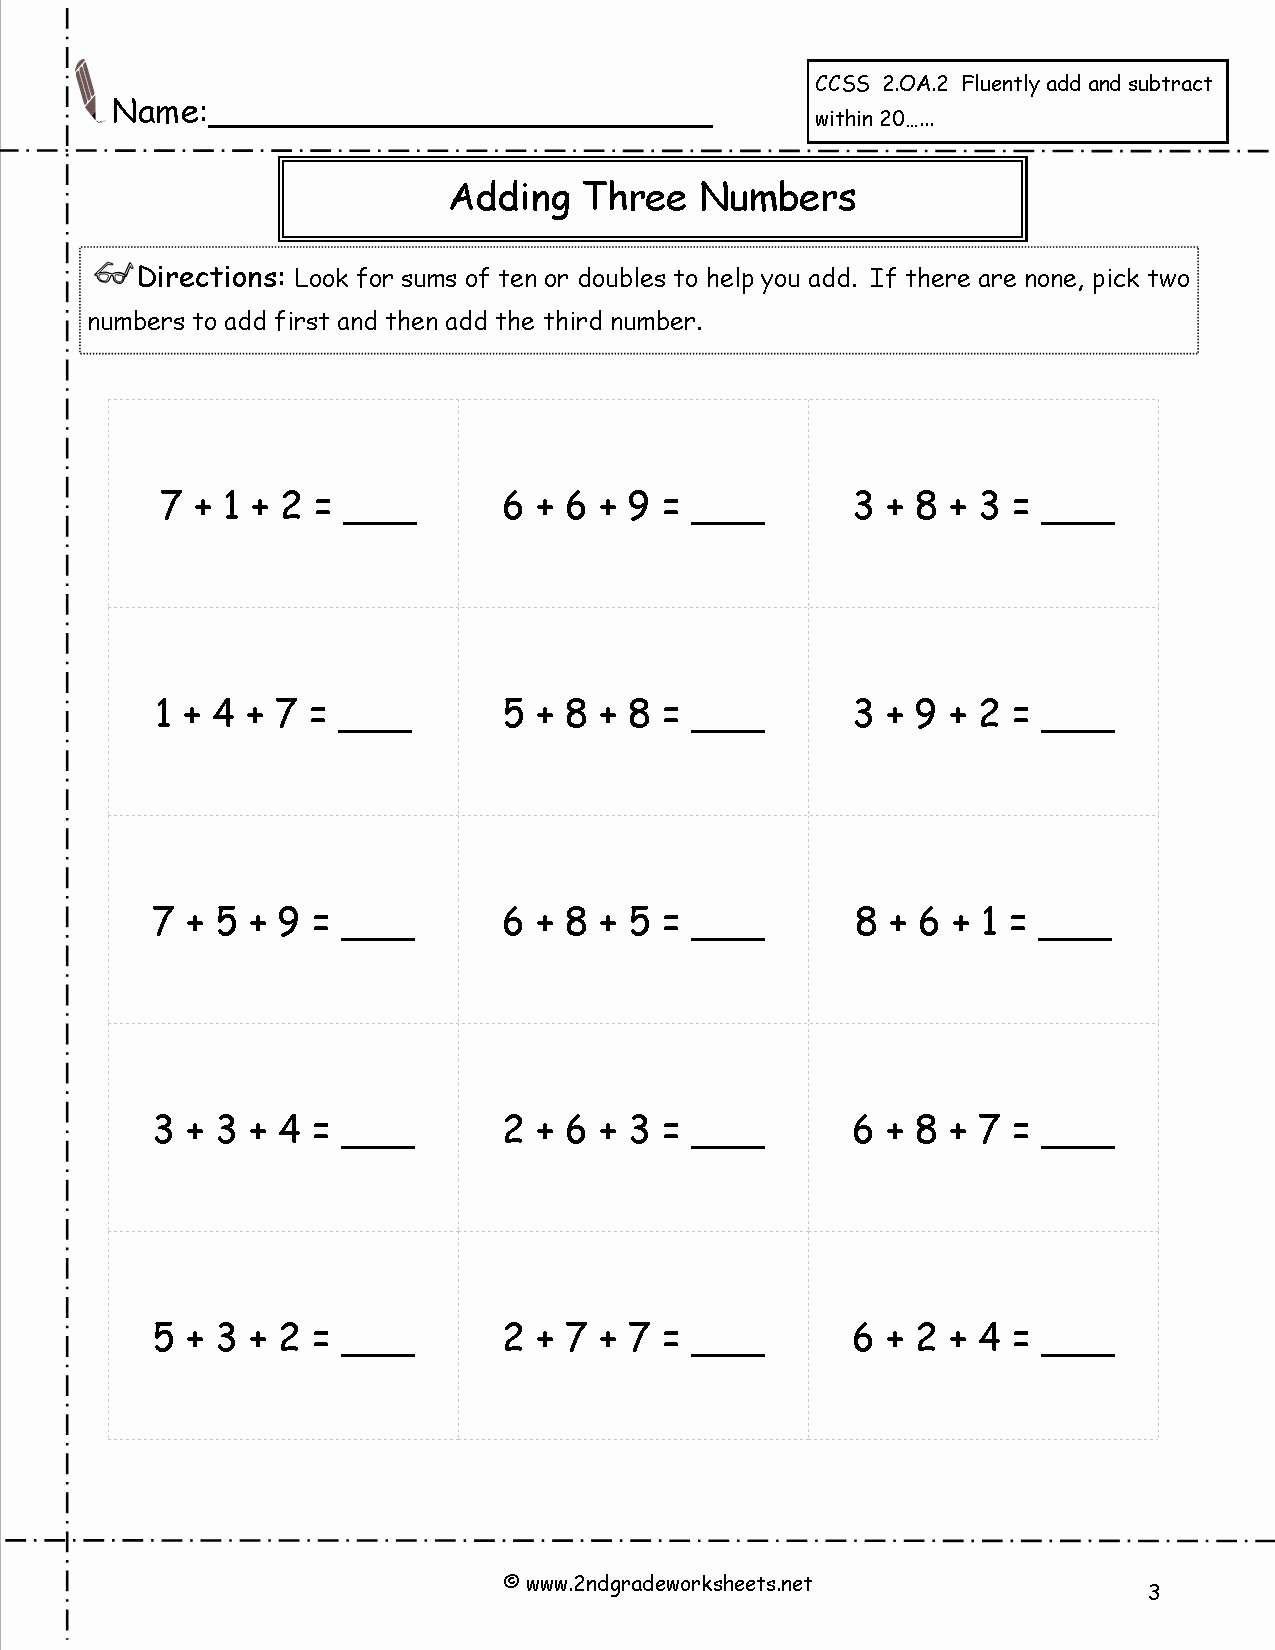 Adding Three Numbers Worksheet Best Of Adding Three or More Single Digit Numbers Worksheets